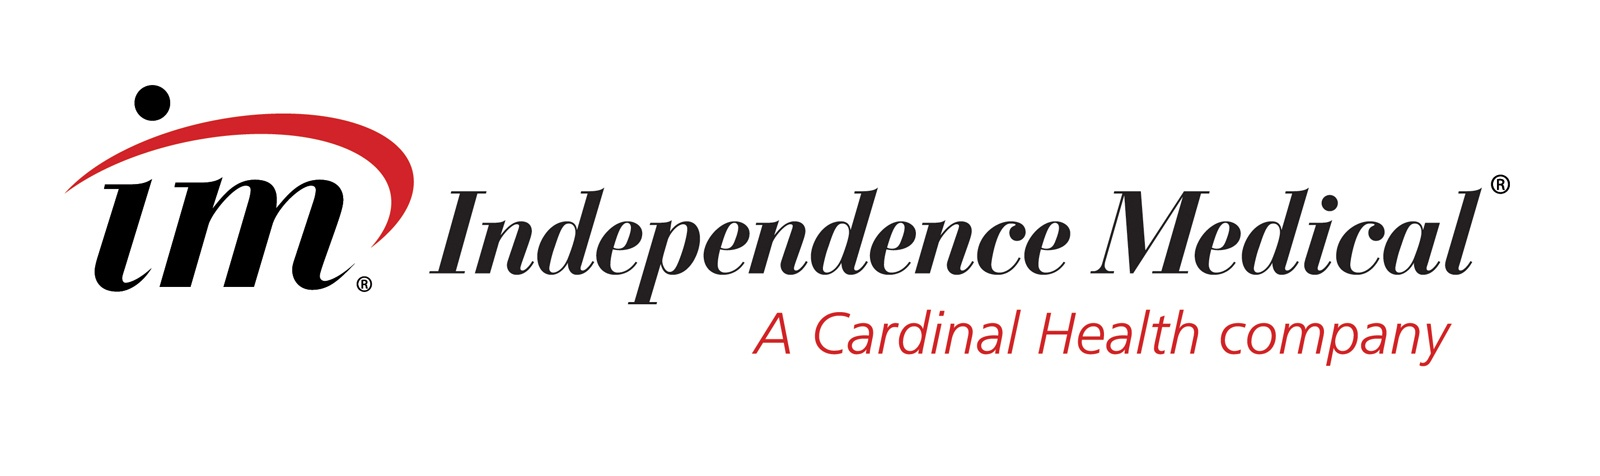 Independence_Medical_Cardinal_Health_TIMS_Software_Partner_Drop_Ship_Logo_2018